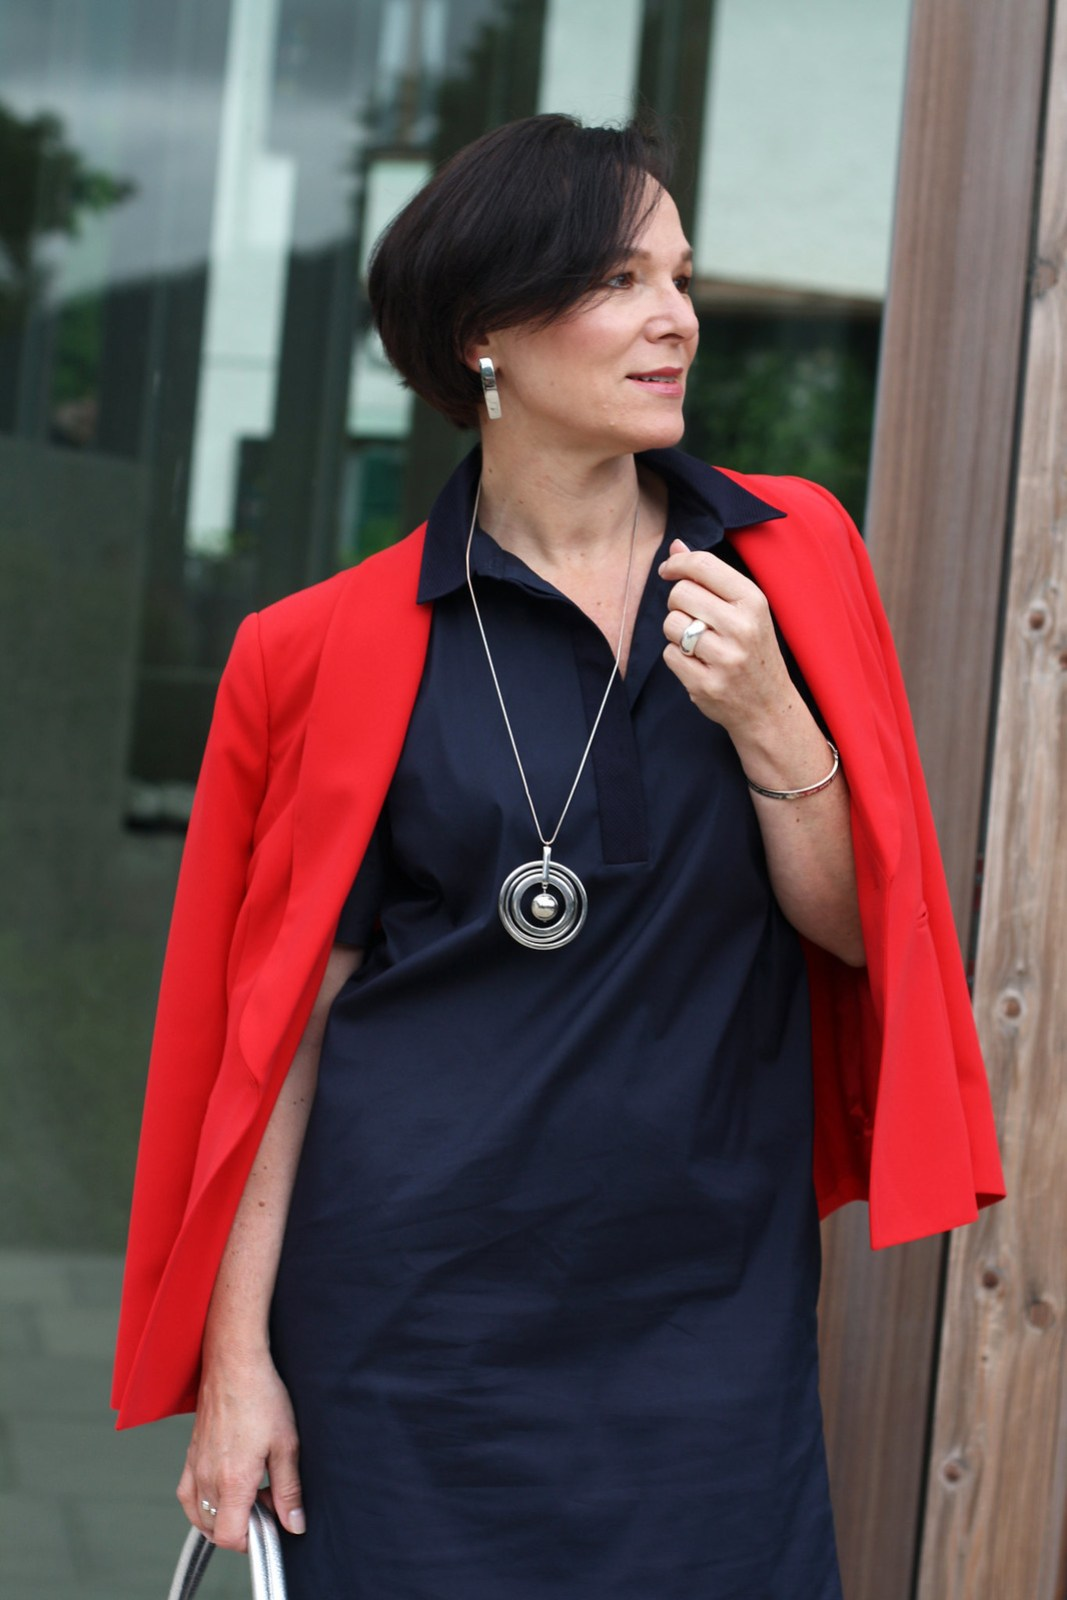 LadyofStyle Blue Shirtdress COS Red Blazer Madeleine Office Look